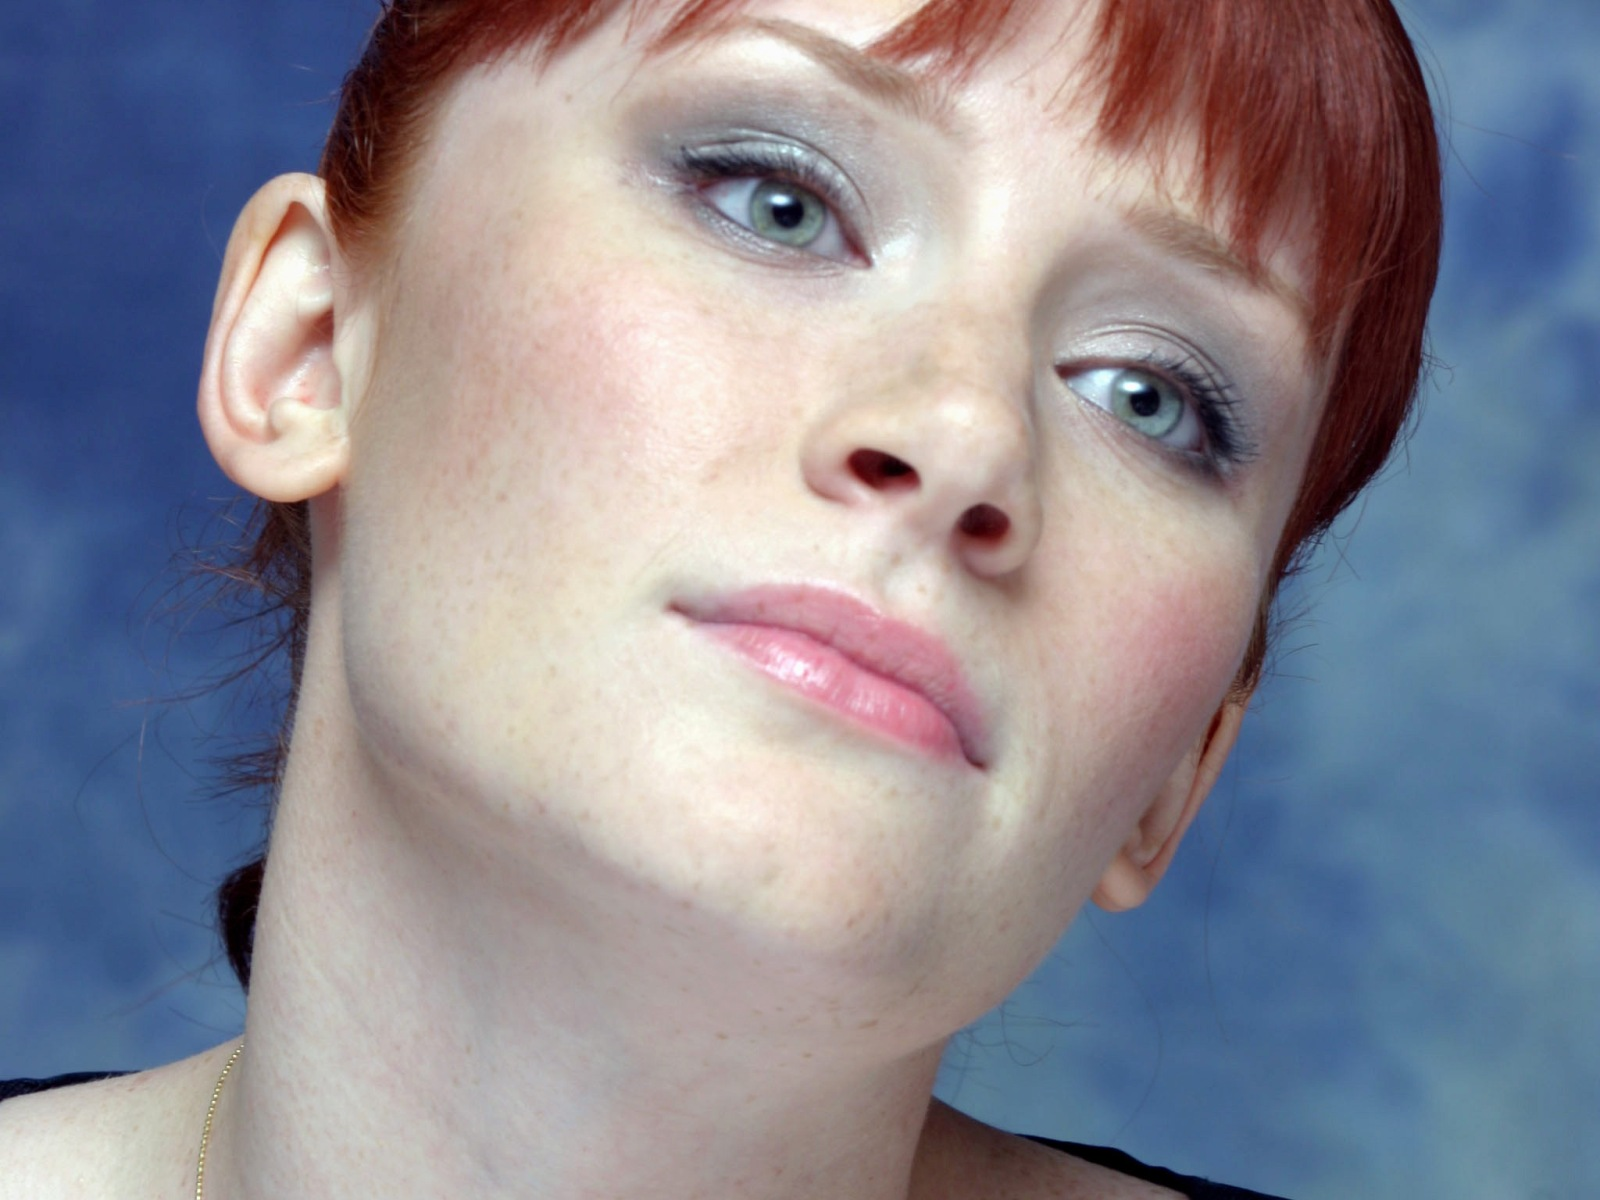 All New Photos And Videos Blog Bryce Dallas Howard Photos Bryce Dallas Howard Wallpapers